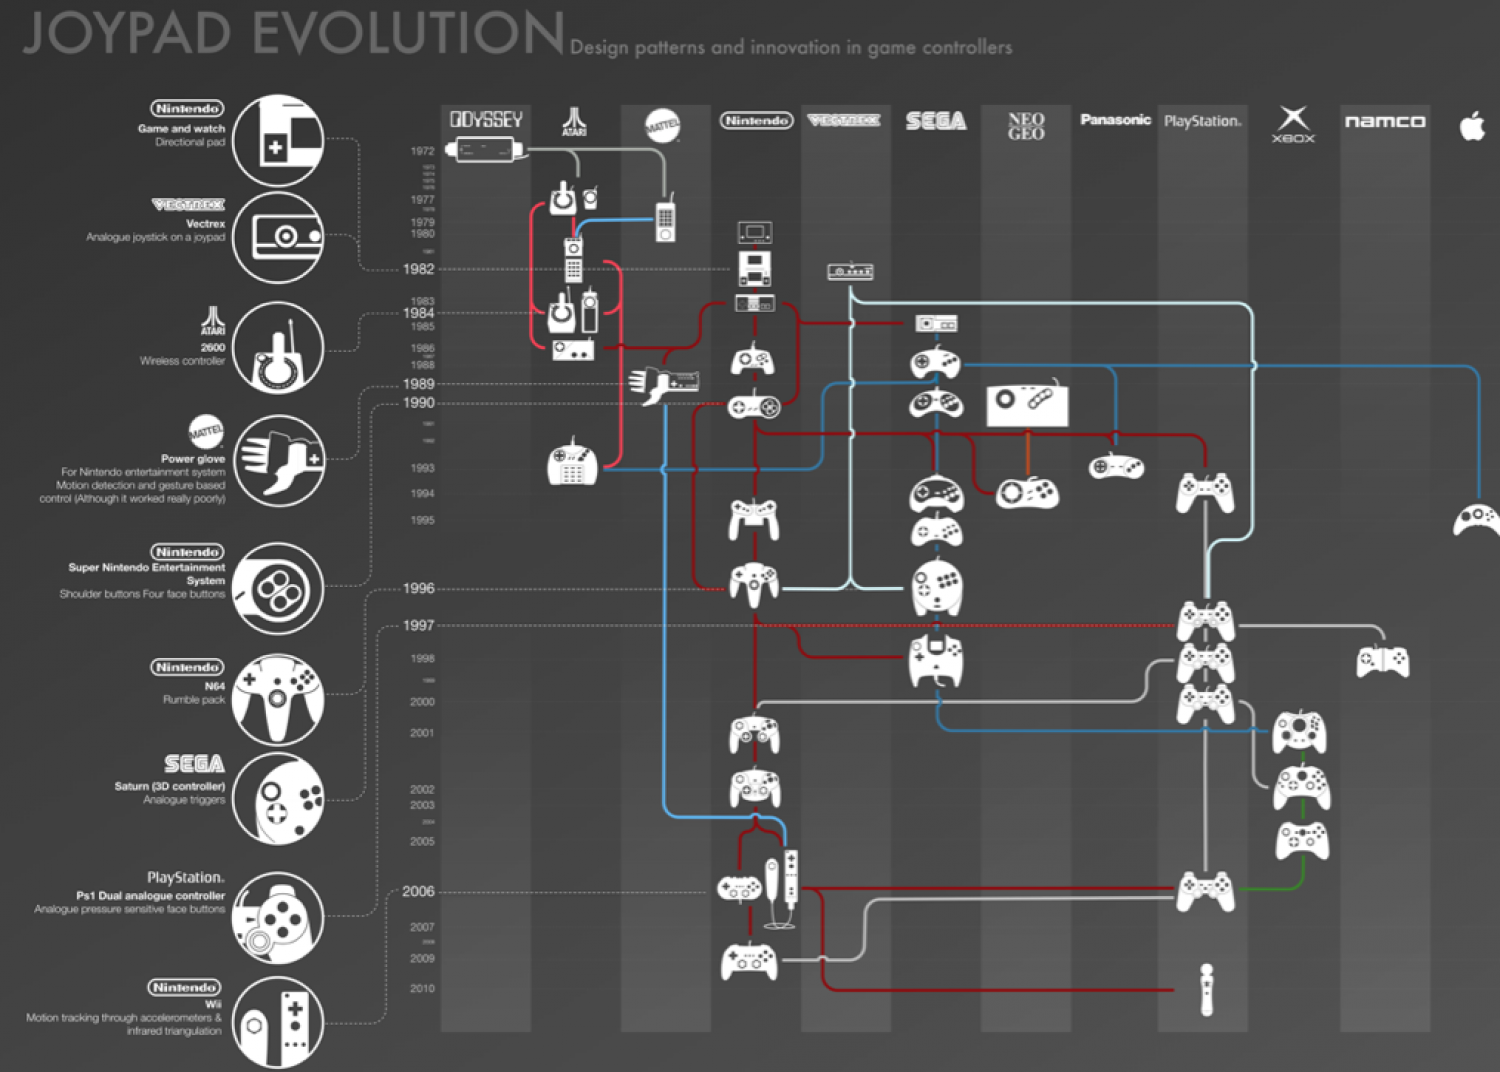 The Joypad: The Evolution of the Gaming Controller Infographic